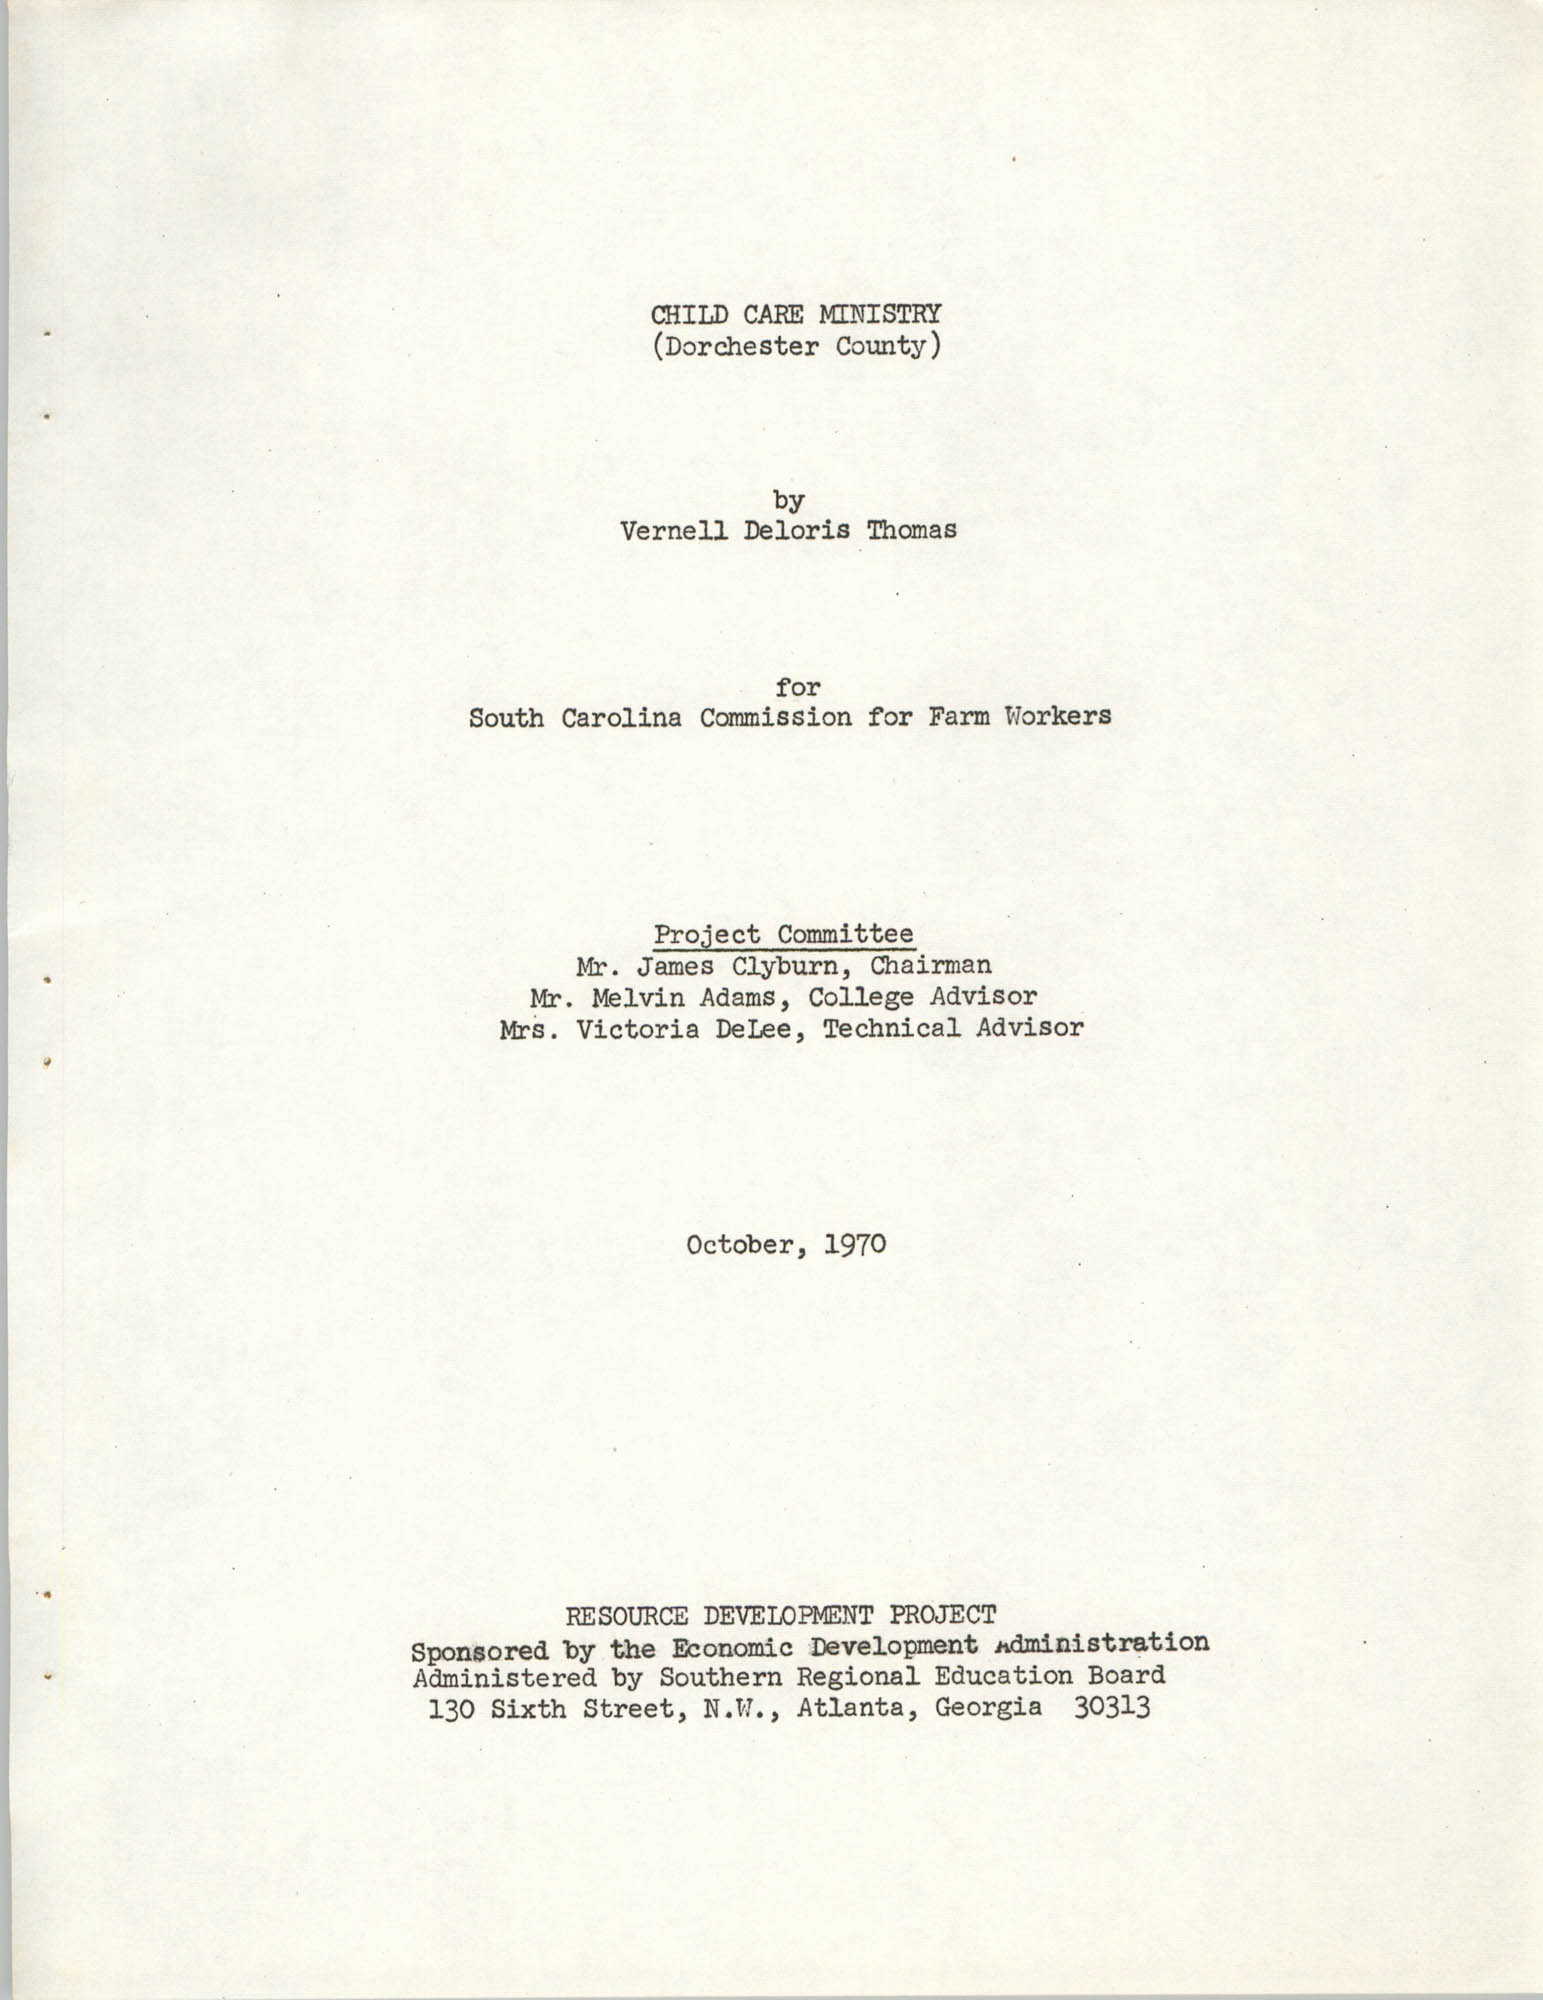 Child Care Ministry, Dorchester County, S.C., Title Page